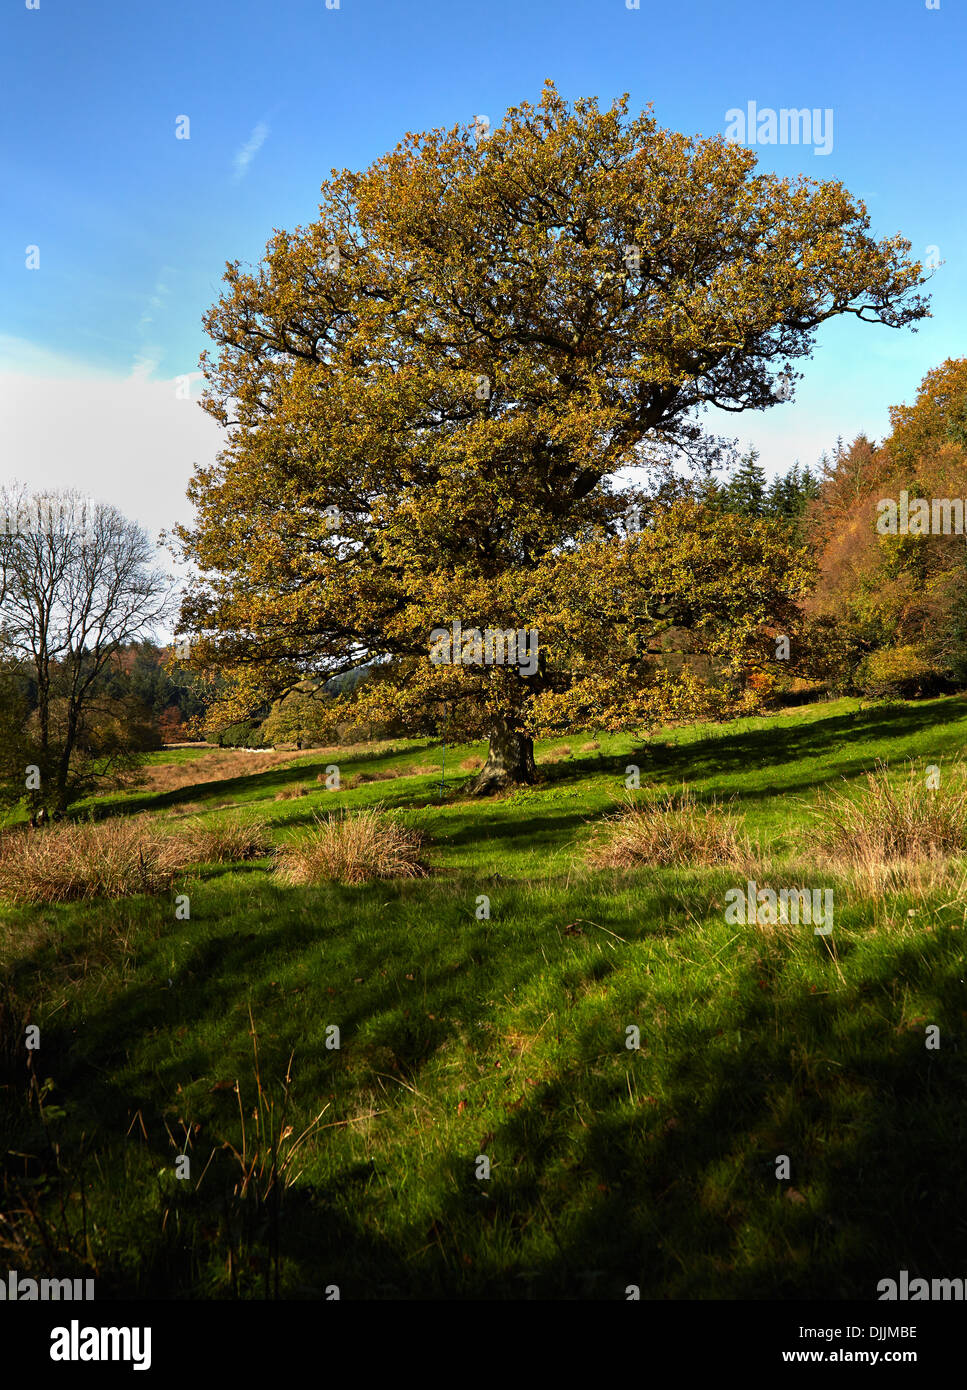 English Oak Quercus Robur in autumn foliage Wiltshire UK - Stock Image